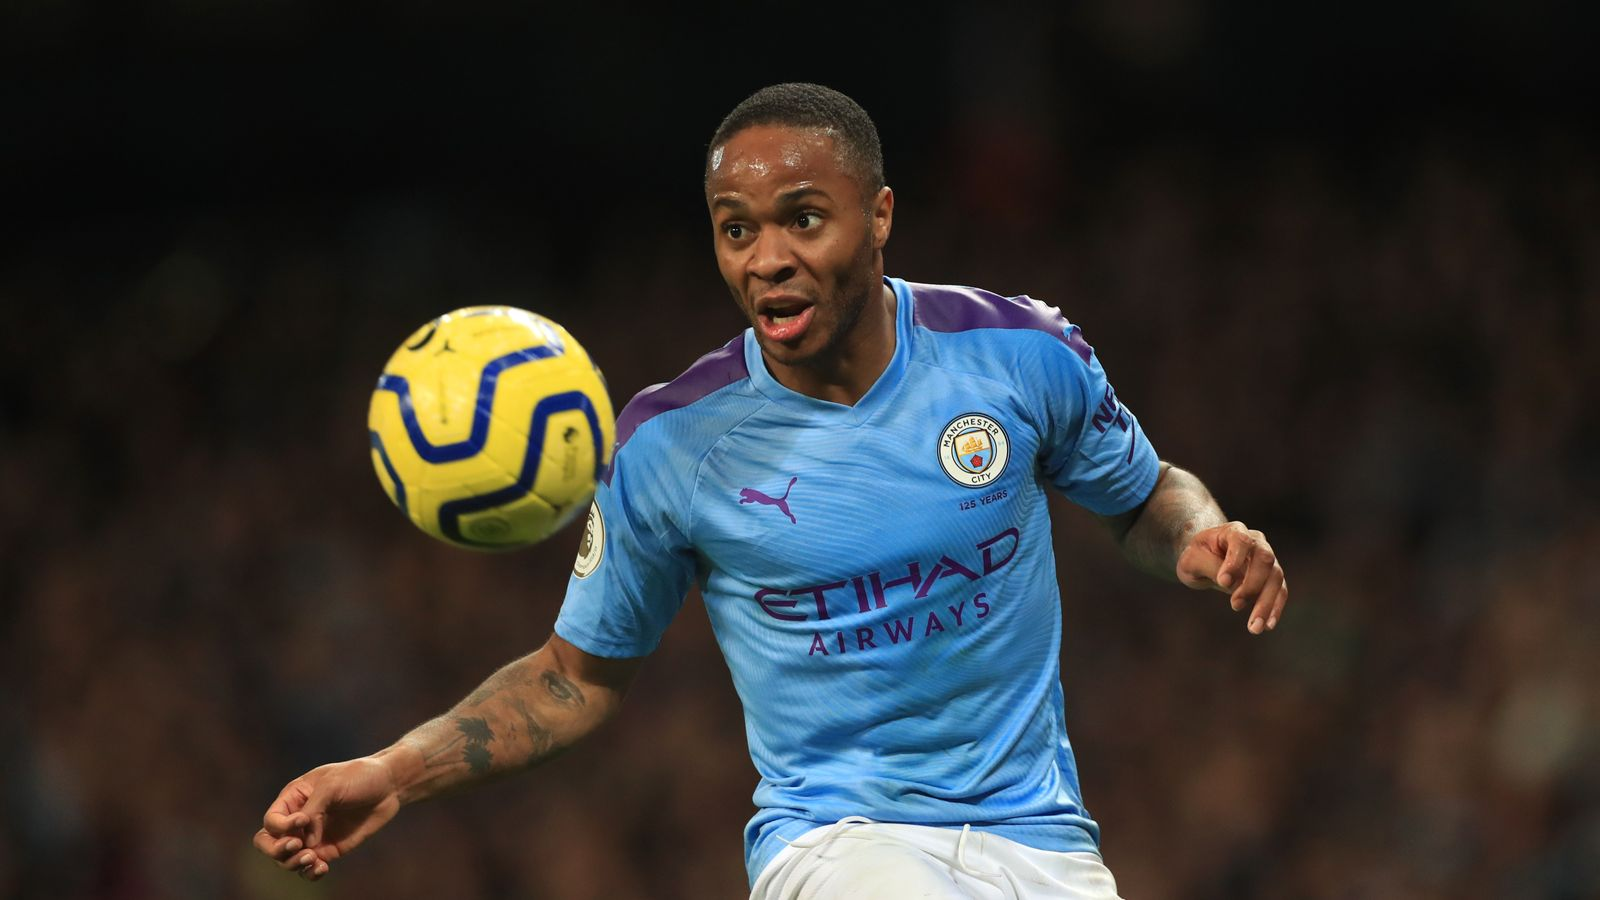 Raheem Sterling racially abused on Instagram less than 48 hours after football social media boycott ends